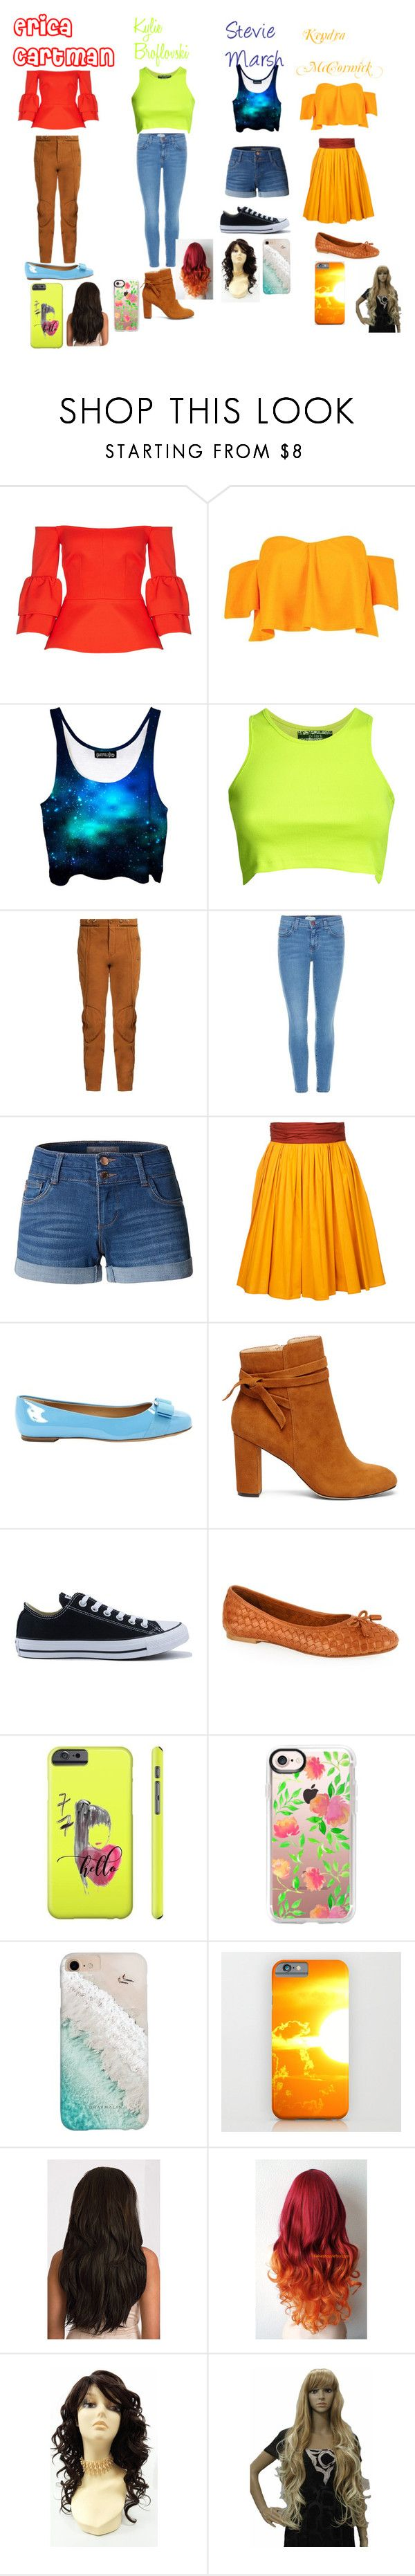 """South Park Genderbend"" by rocky-road-981 ❤ liked on Polyvore featuring Safiyaa, Boohoo, Pilot, Current/Elliott, LE3NO, Paule Ka, Salvatore Ferragamo, Sole Society, Converse and Carvela Kurt Geiger"